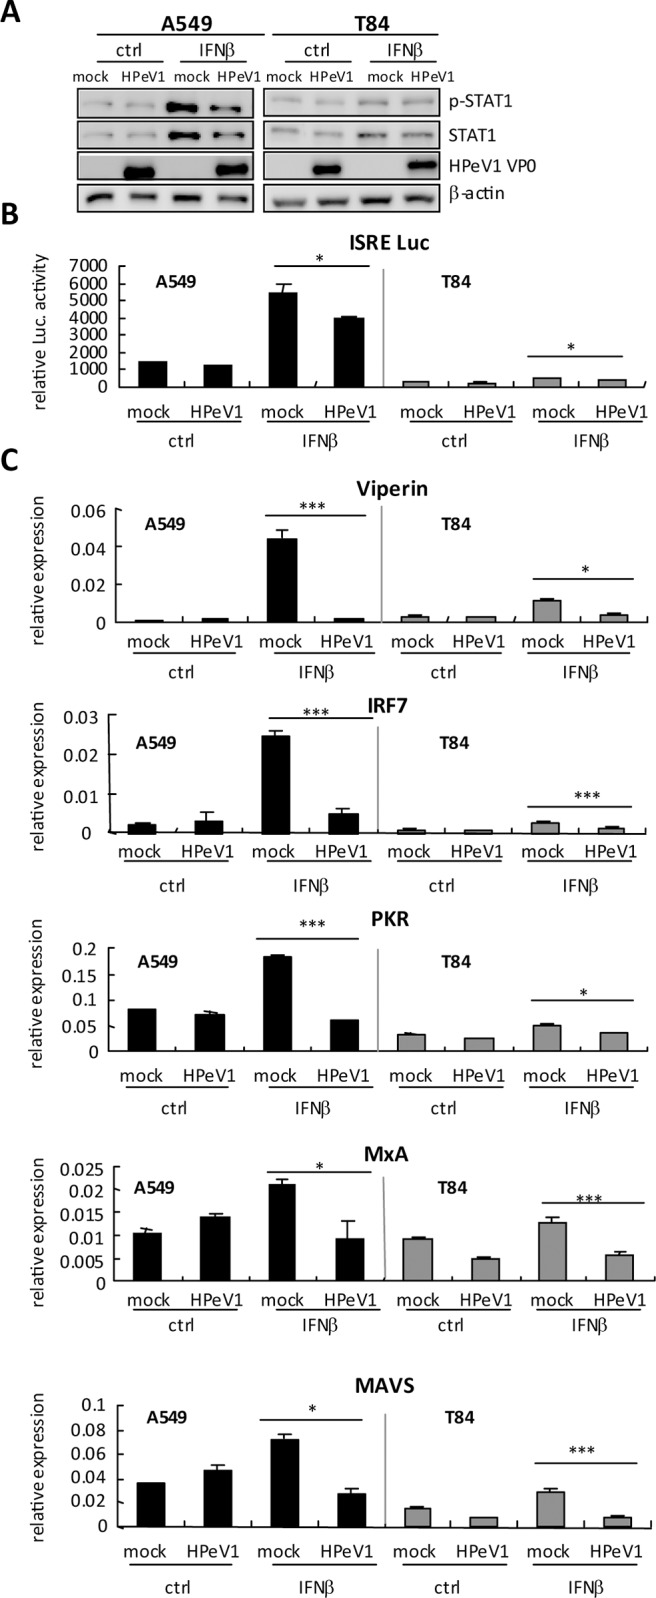 HPeV1 downregulates type I IFN activity. (A) A549 and T84 cells (3×10 5 ) were infected with mock or HPeV1 at MOI = 5 for 6 h, then treated with IFNβ (1000 U/ml) for 18 h; untreated cells are indicated as ctrl. Immunoblotting of levels of phospho-STAT1 and total STAT1 in whole cell extracts. HPeV1 VP0 indicates viral infection and β-actin is a loading control. (B) Interferon-stimulated response element (ISRE) reporter assay was performed in A549 and T84 cells (3×10 5 ) transfected with ISRE-luciferase reporter plasmids (400 ng) and control vector pRL-TK (40 ng) for 24 h, then infected with HPeV1 for 6 h. After 24 h of IFNβ (1000 U/ml) stimulation, ISRE luciferase activity was measured by dual-luciferase assay and (C) RT-qPCR of mRNA expression. Data are mean ± SD of at least 3 independent experiments. Student t test, * p